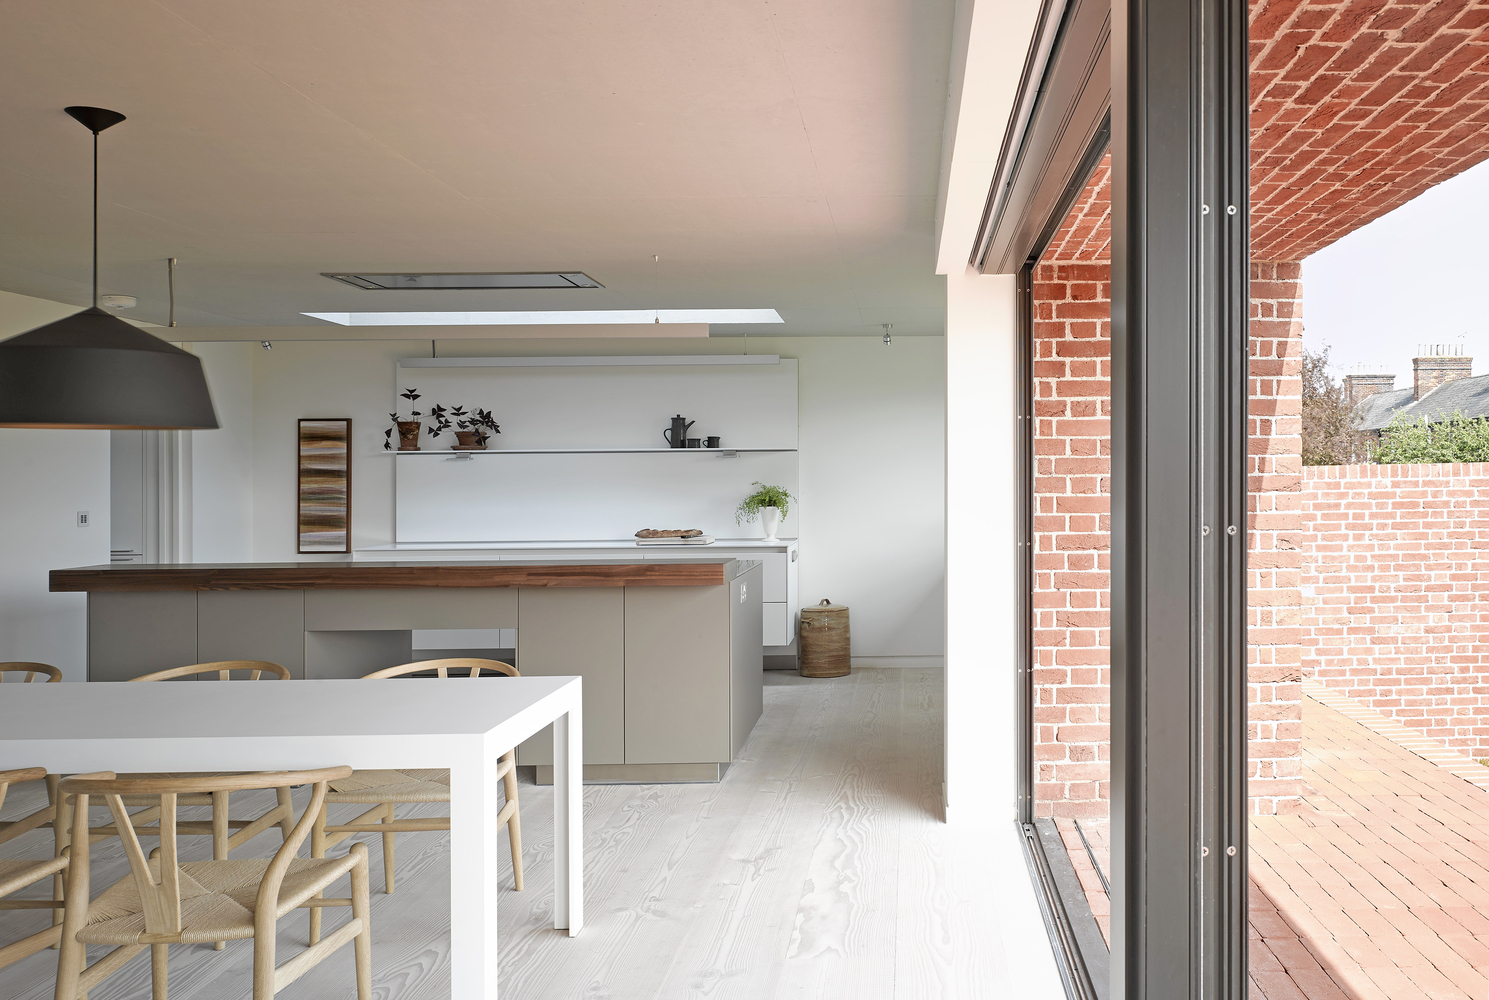 9_broad-street-house-in-suffolk_nash-baker-architects_inspirationist